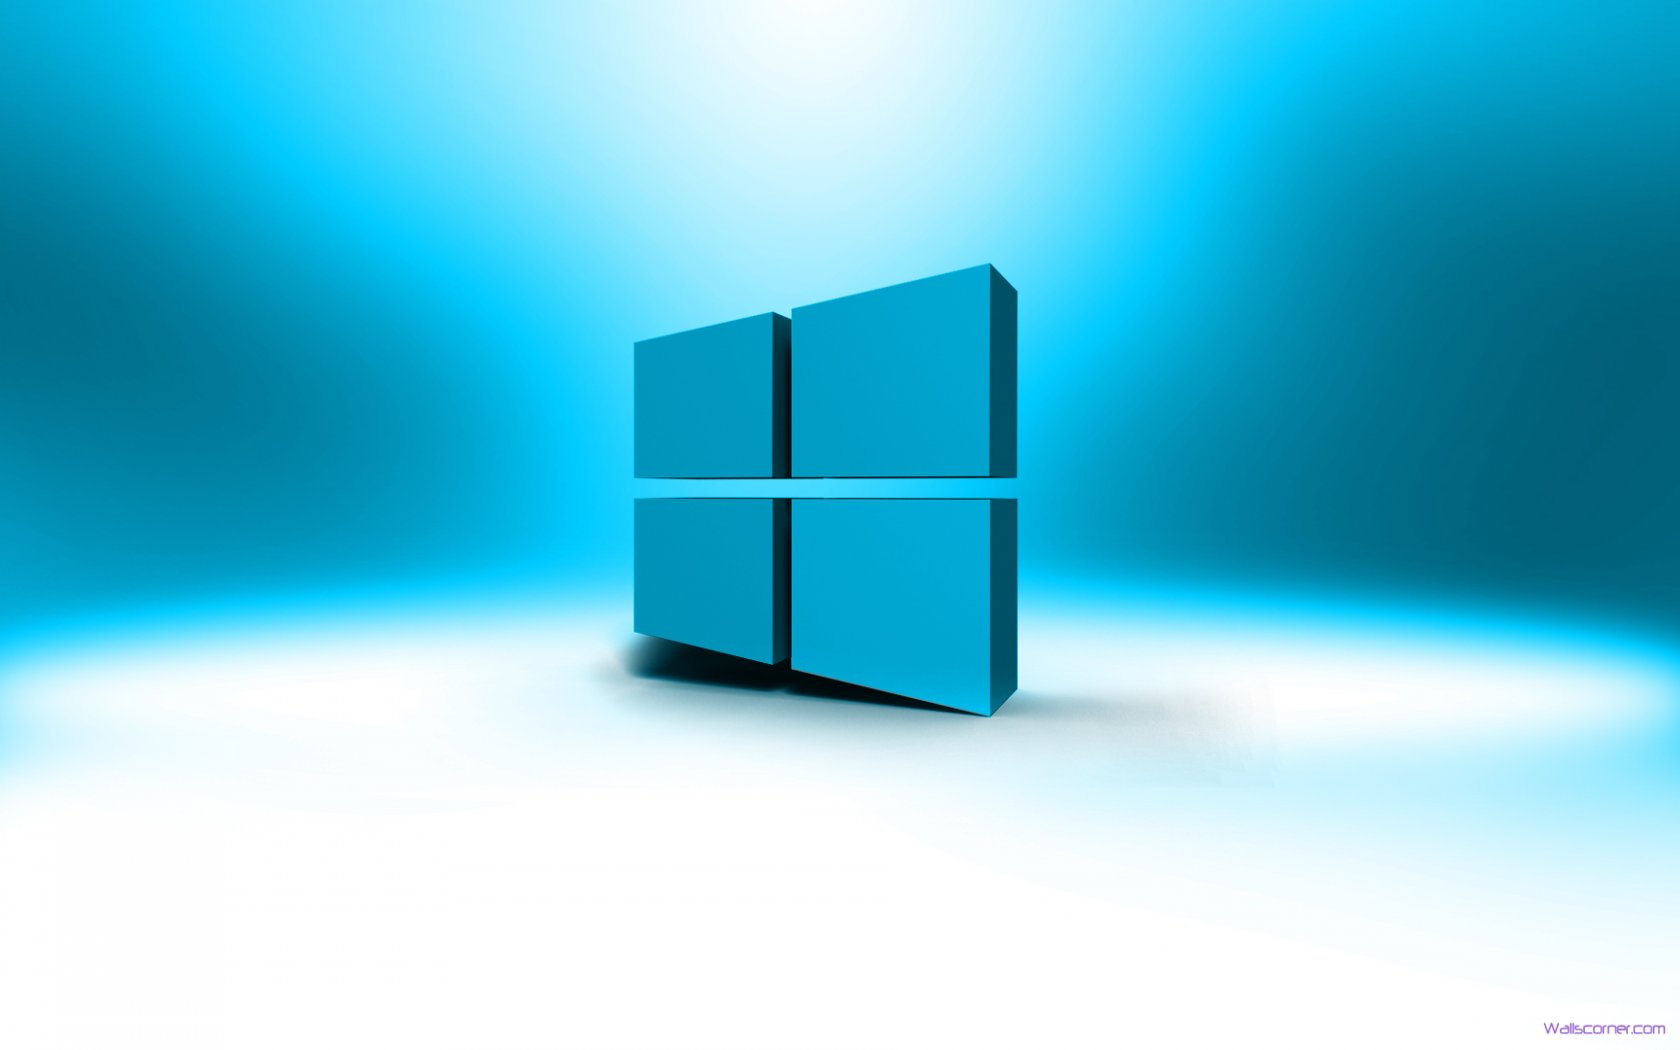 Windows 8 3D Logo Wallpaper HD HQ Widescreen Wallpapers Download